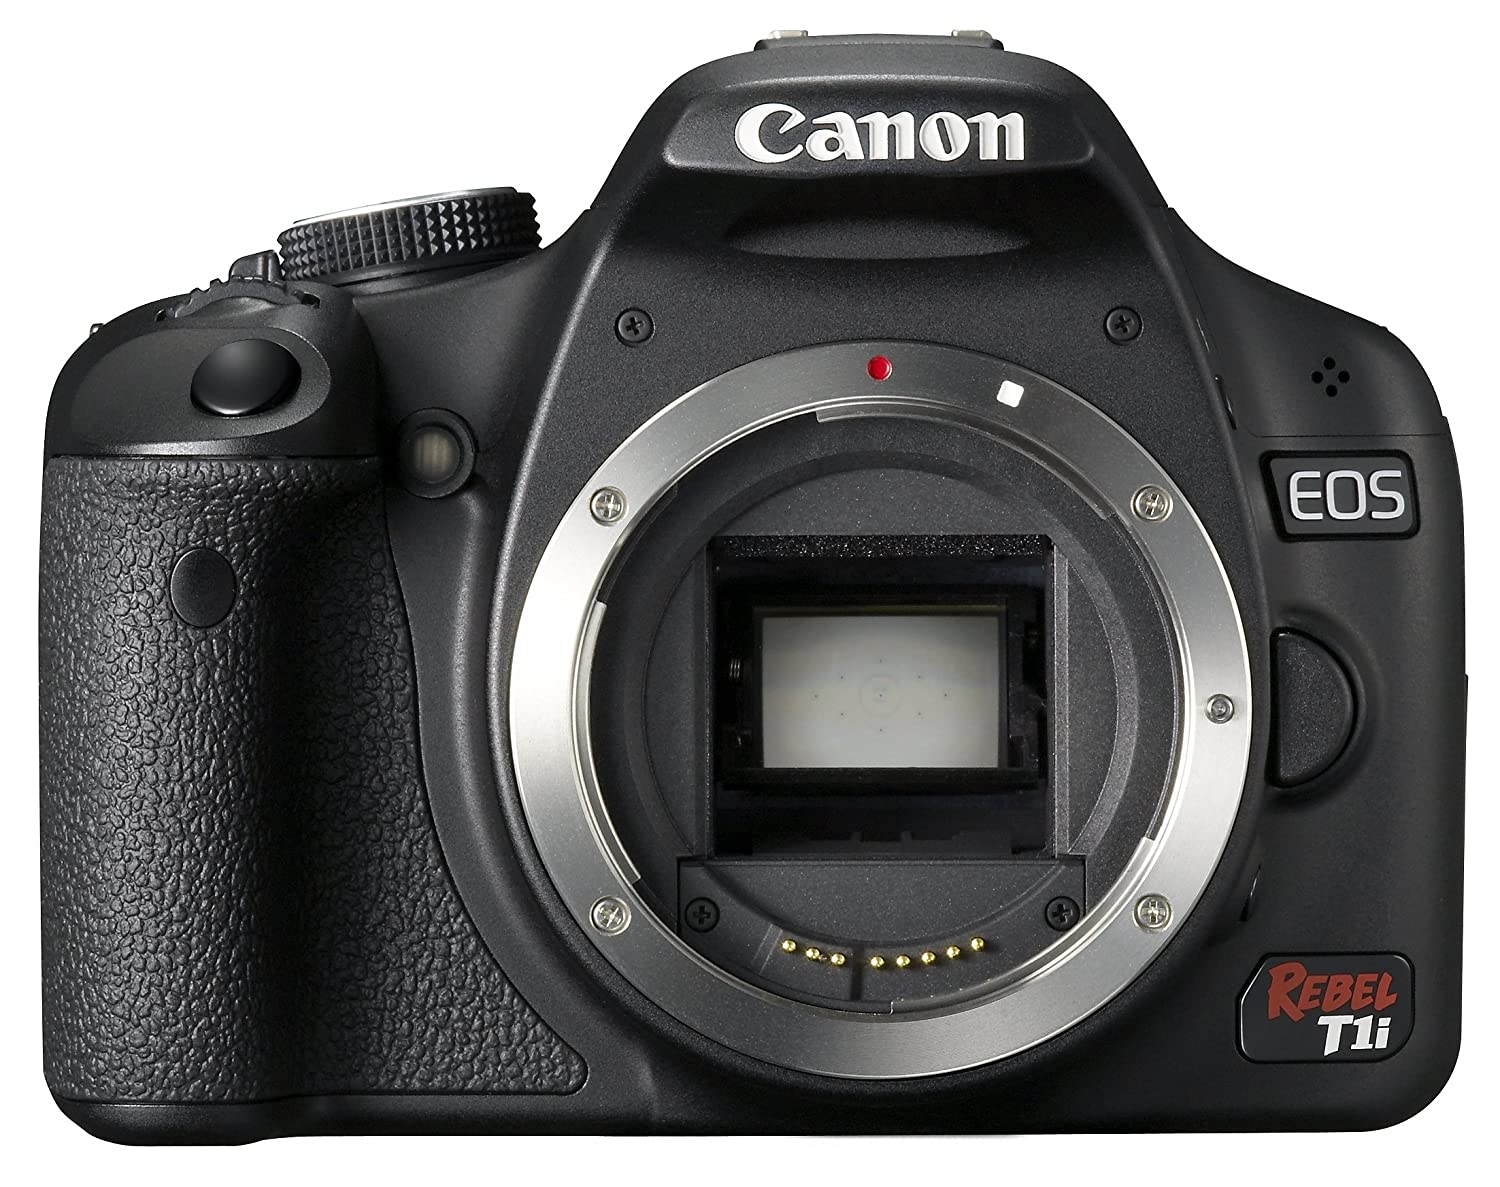 Amazon.com : Canon EOS Rebel T1i 15.1 MP CMOS Digital SLR Camera with  3-Inch LCD (Body Only) : Camera & Photo